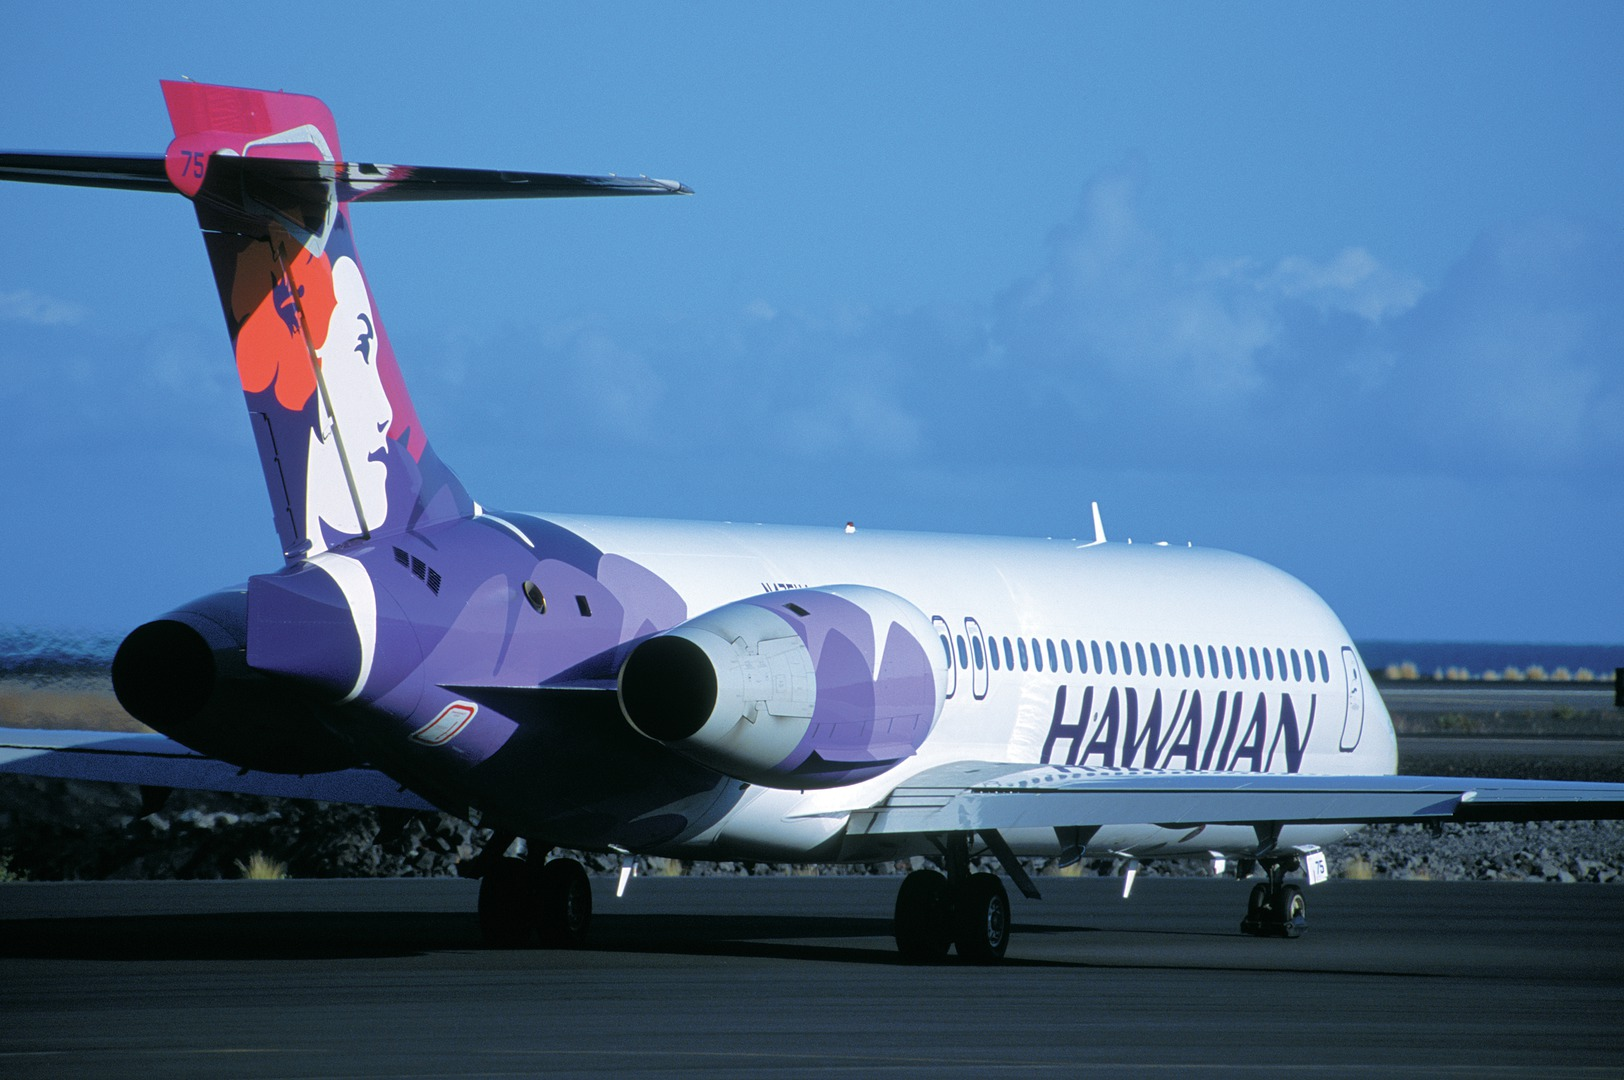 Hawaiian Airlines Says It Will Retrofit Its Boeing 717 Jets